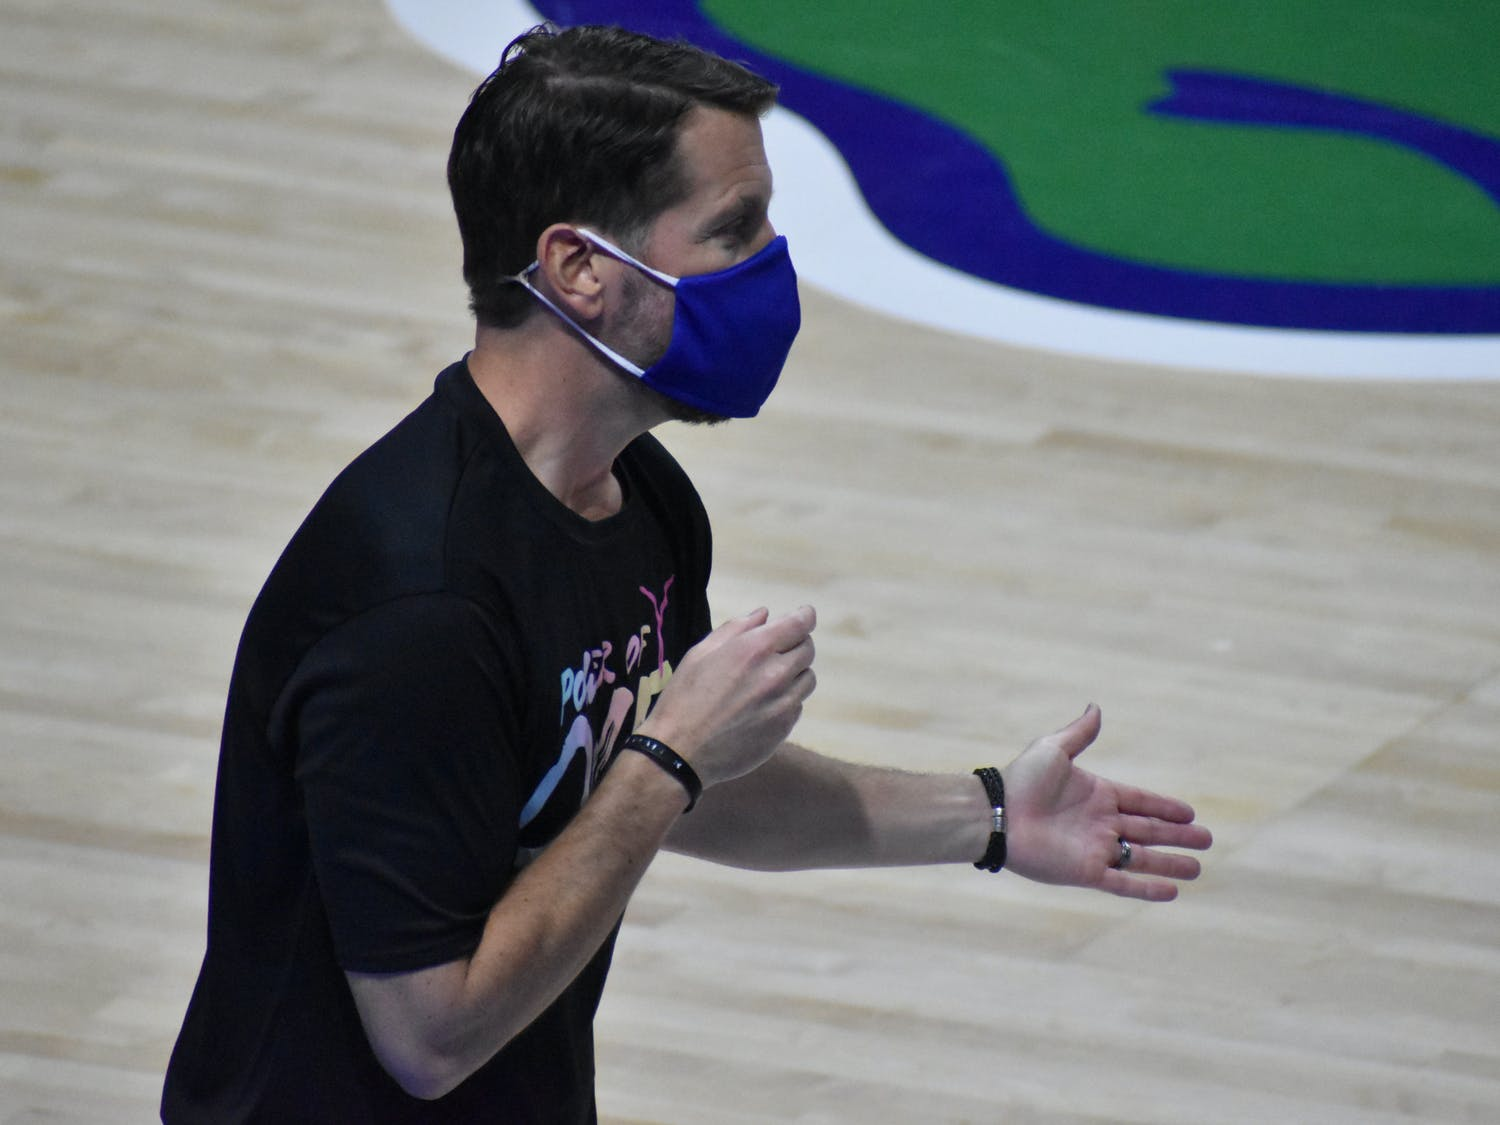 Cameron Newbauer coaching against Kentucky on Feb. 15. Newbauer announced he is stepping down as head coach of the Gators Friday.